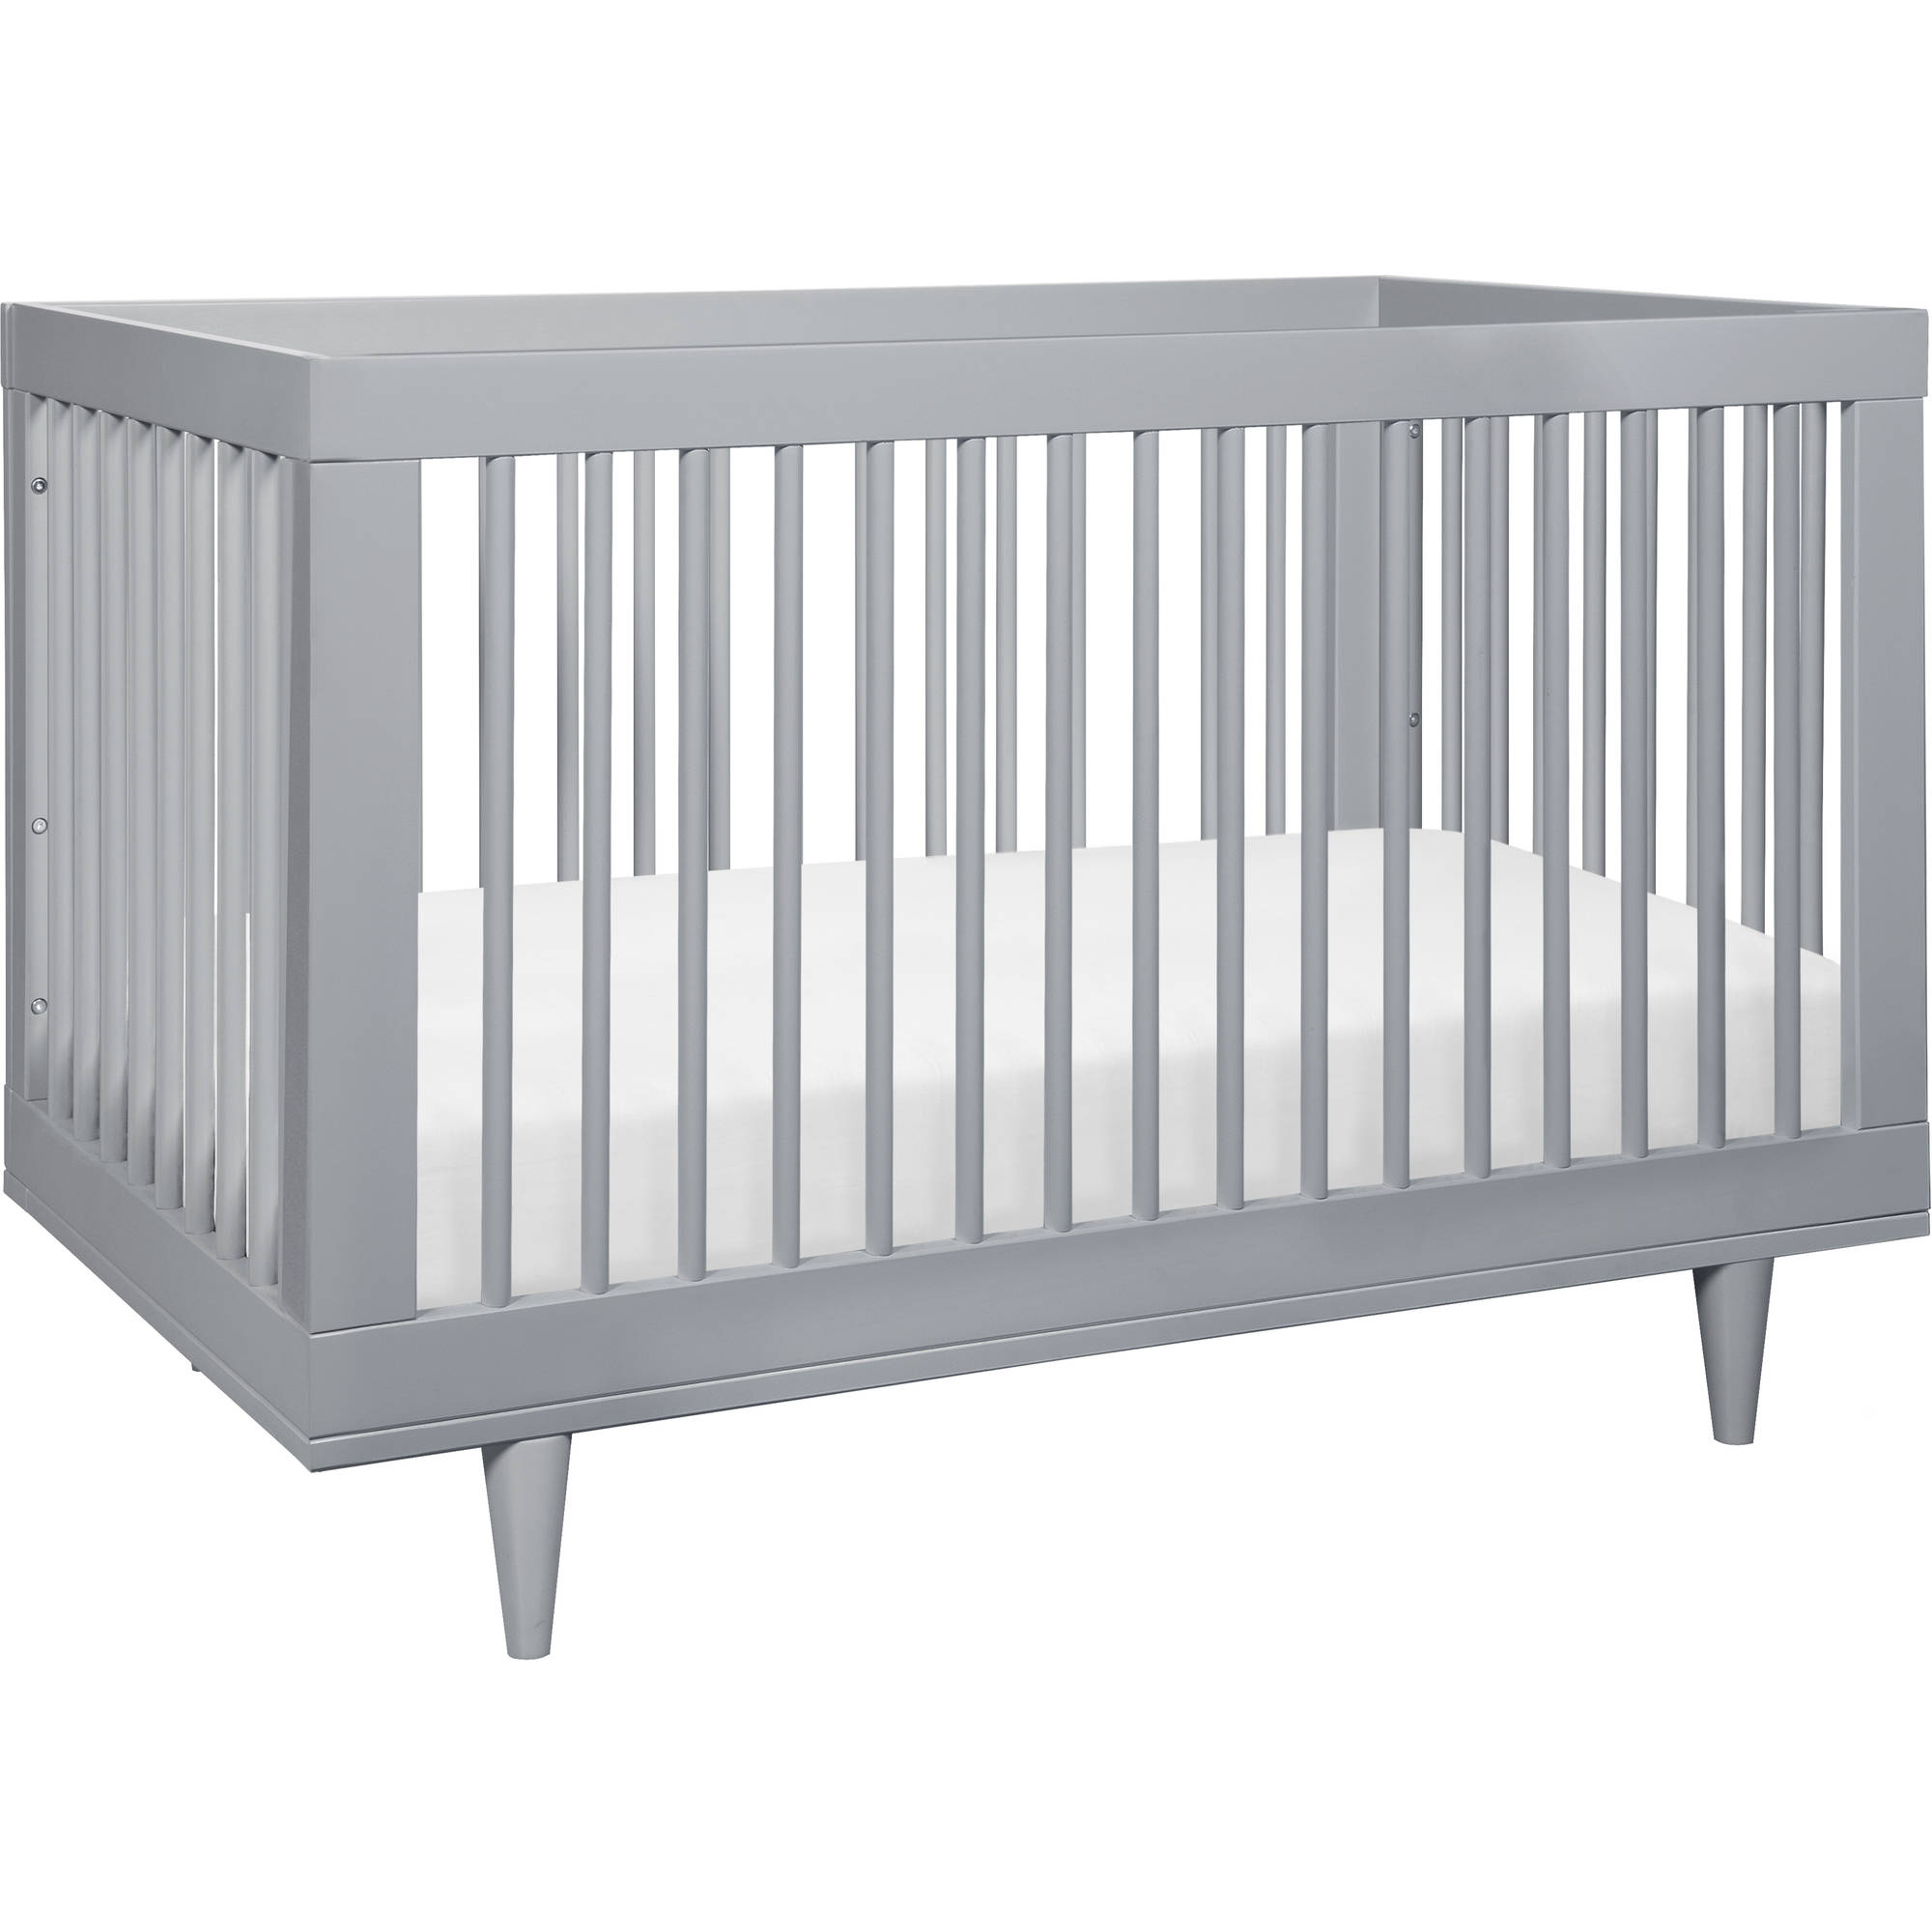 Baby Mod Marley 3-in-1 Convertible Crib Gray